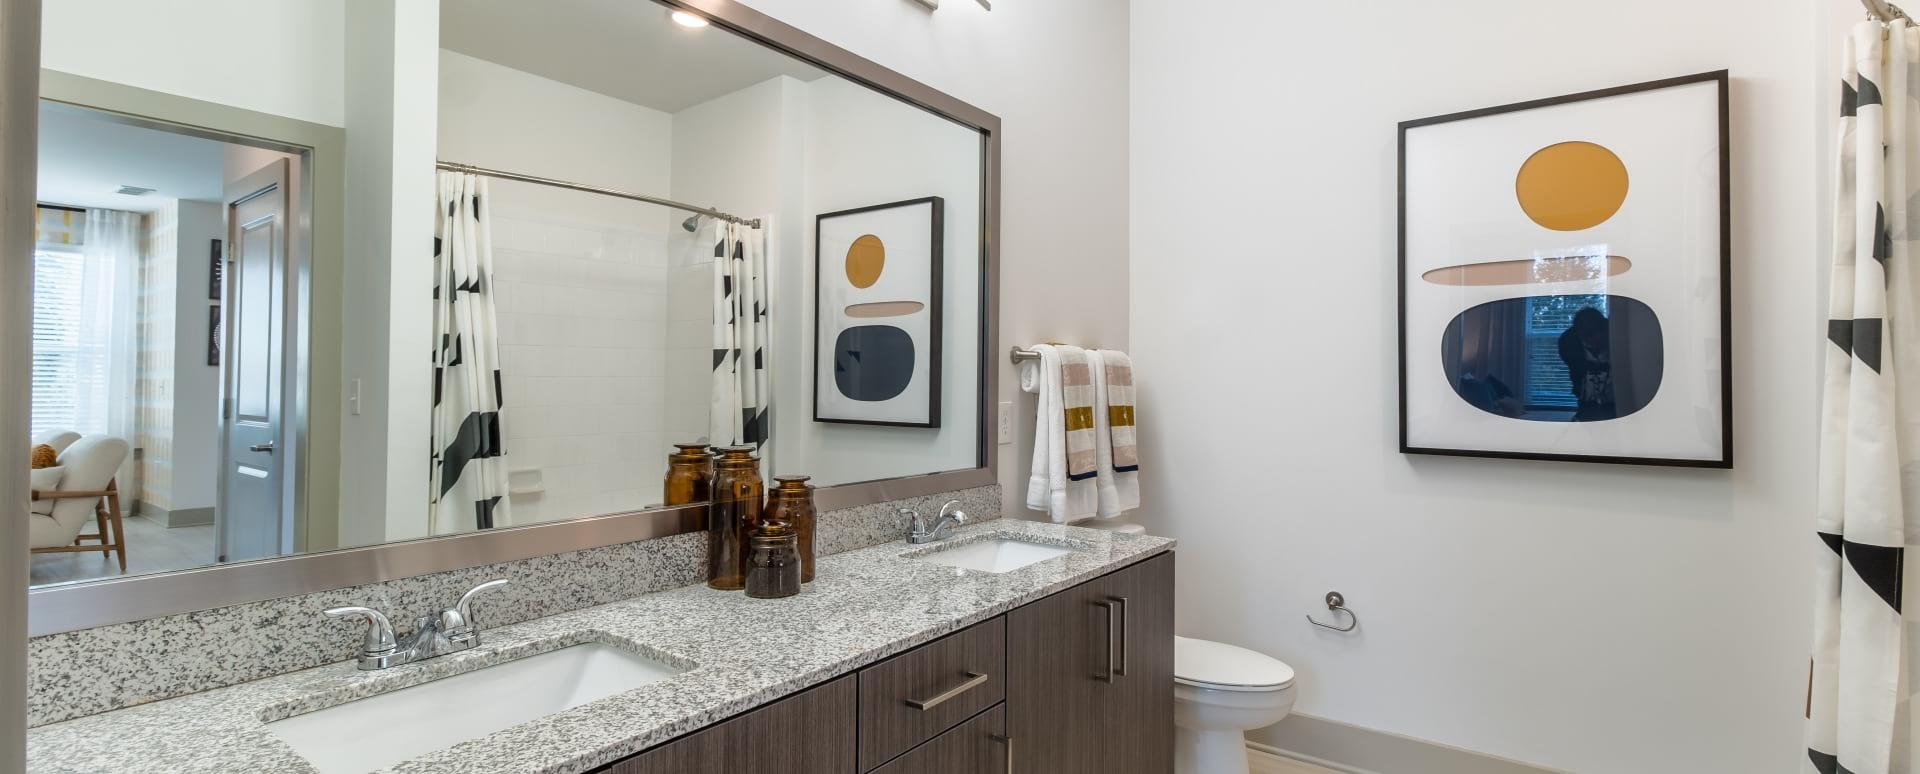 Spacious apartment bathroom with double sink vanity